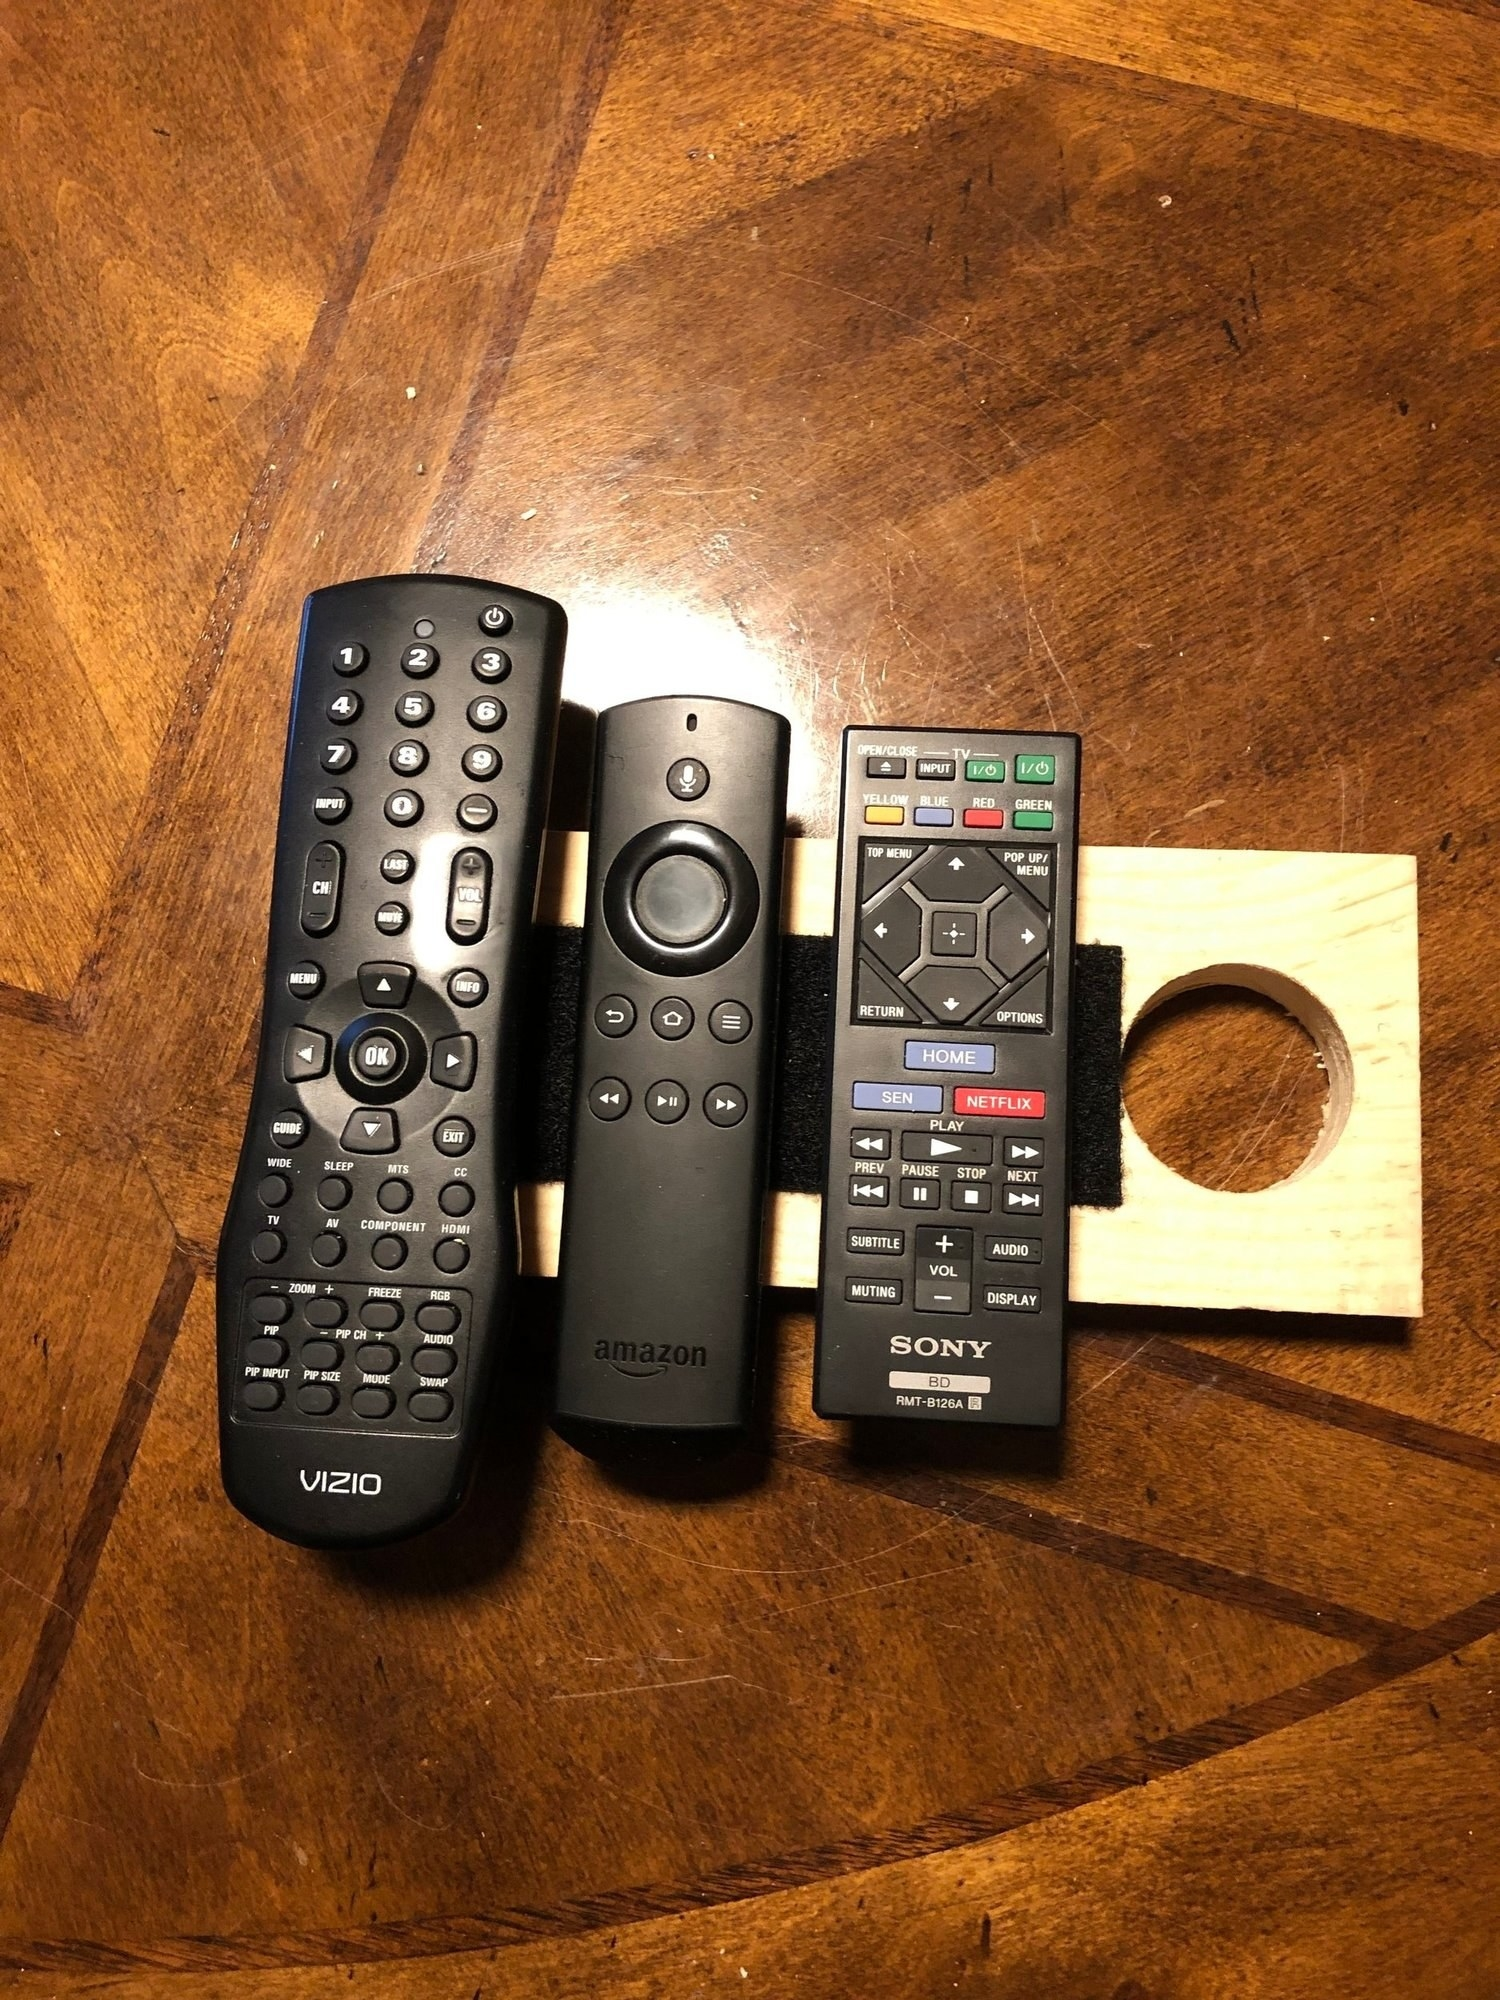 Velcro holding remote controls on a piece of wood that can hang off a doorknob